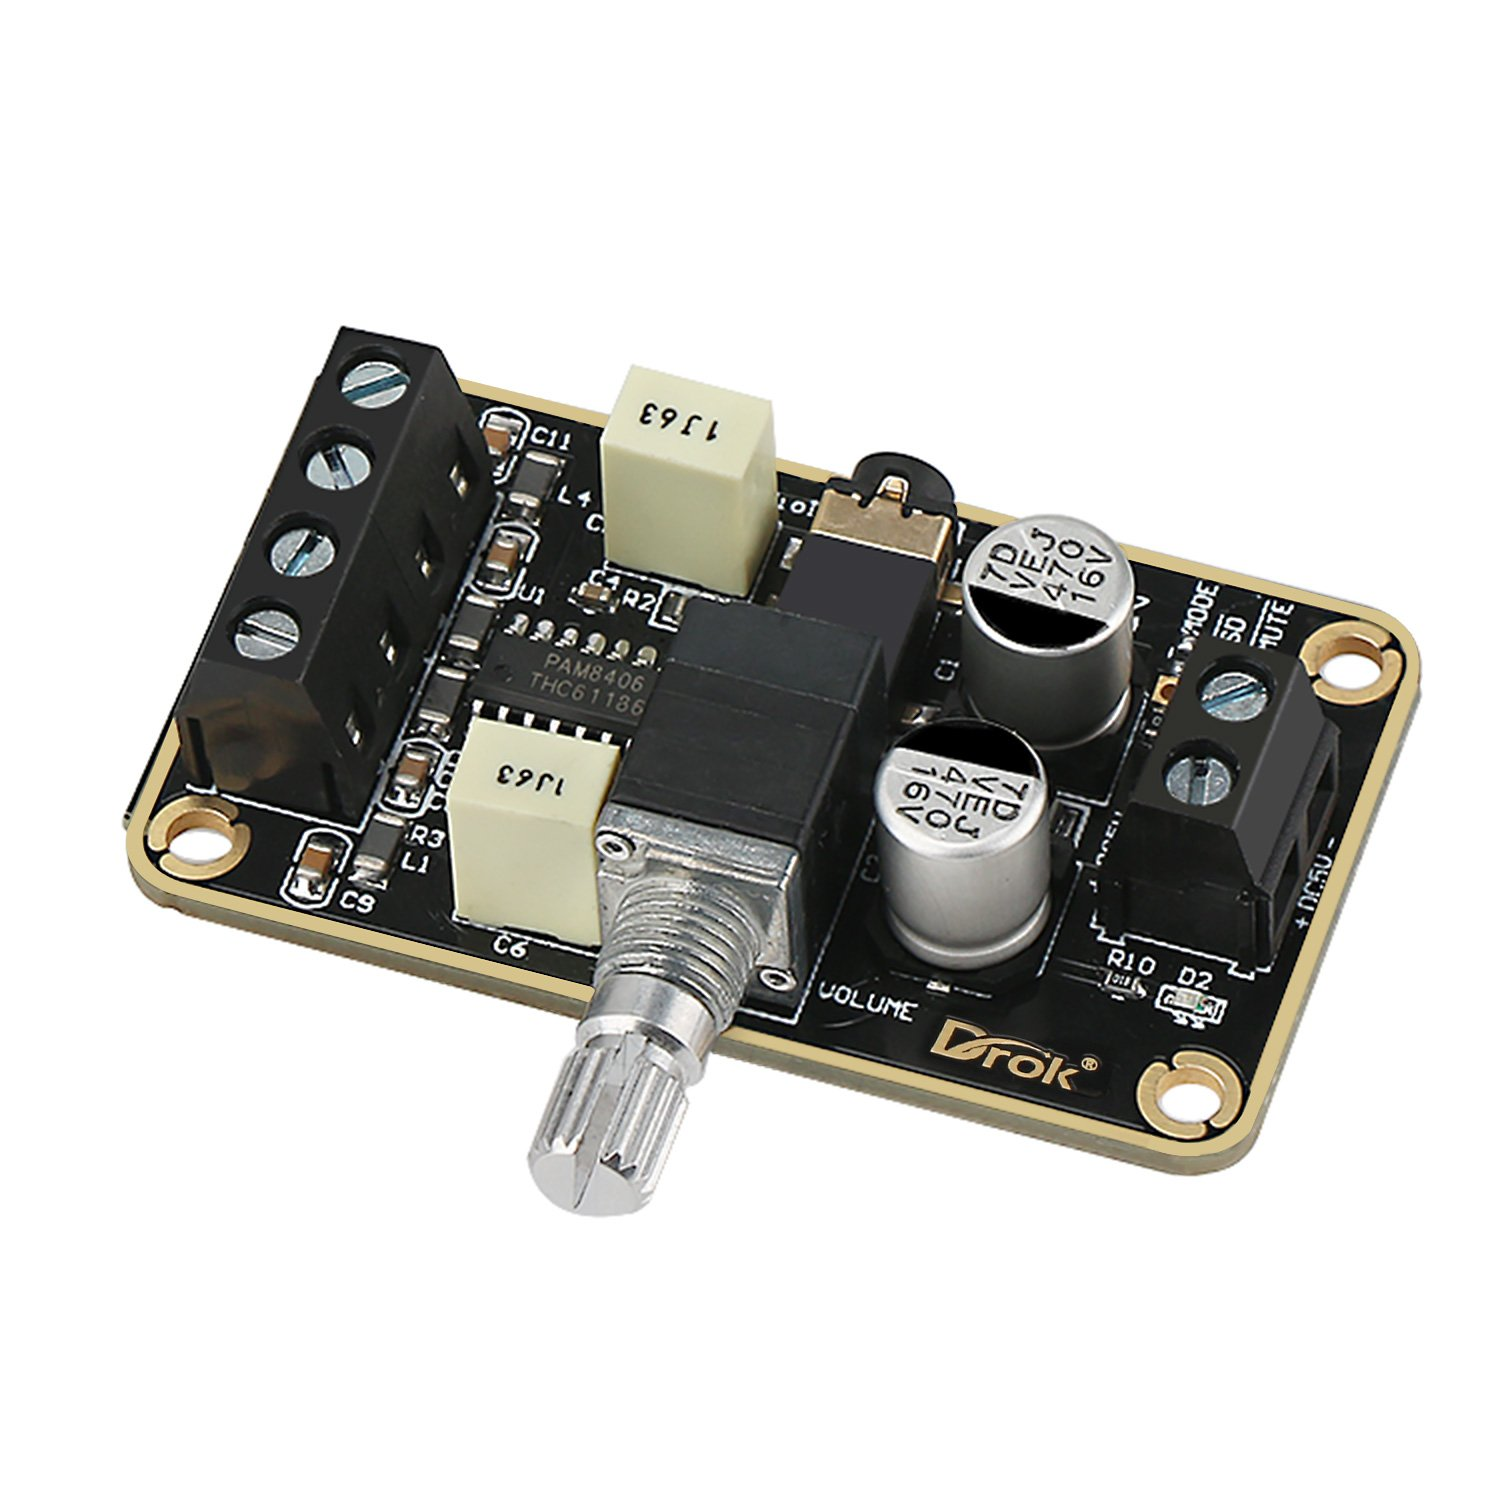 Preamp Module Volume Control Amplifier Headphone Board Diy Cheap Class C Circuit Find Get Quotations Audio Drok Pam8406 Digital Power 5w Immersion Gold Stereo